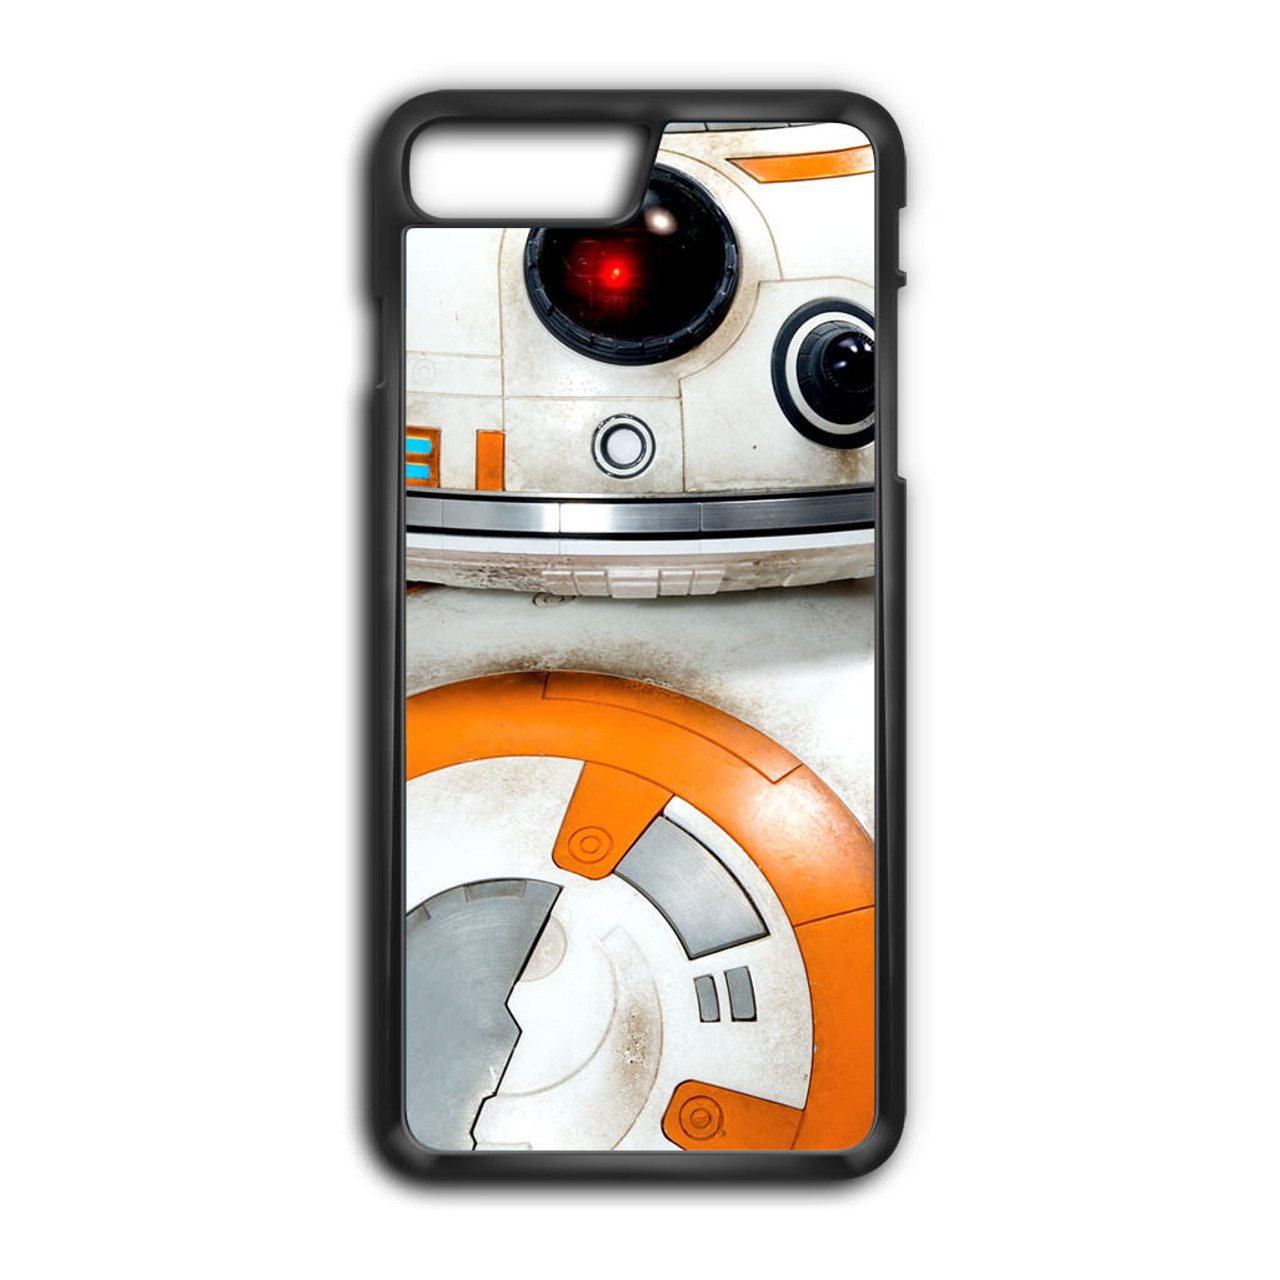 bb8 iphone 8 case